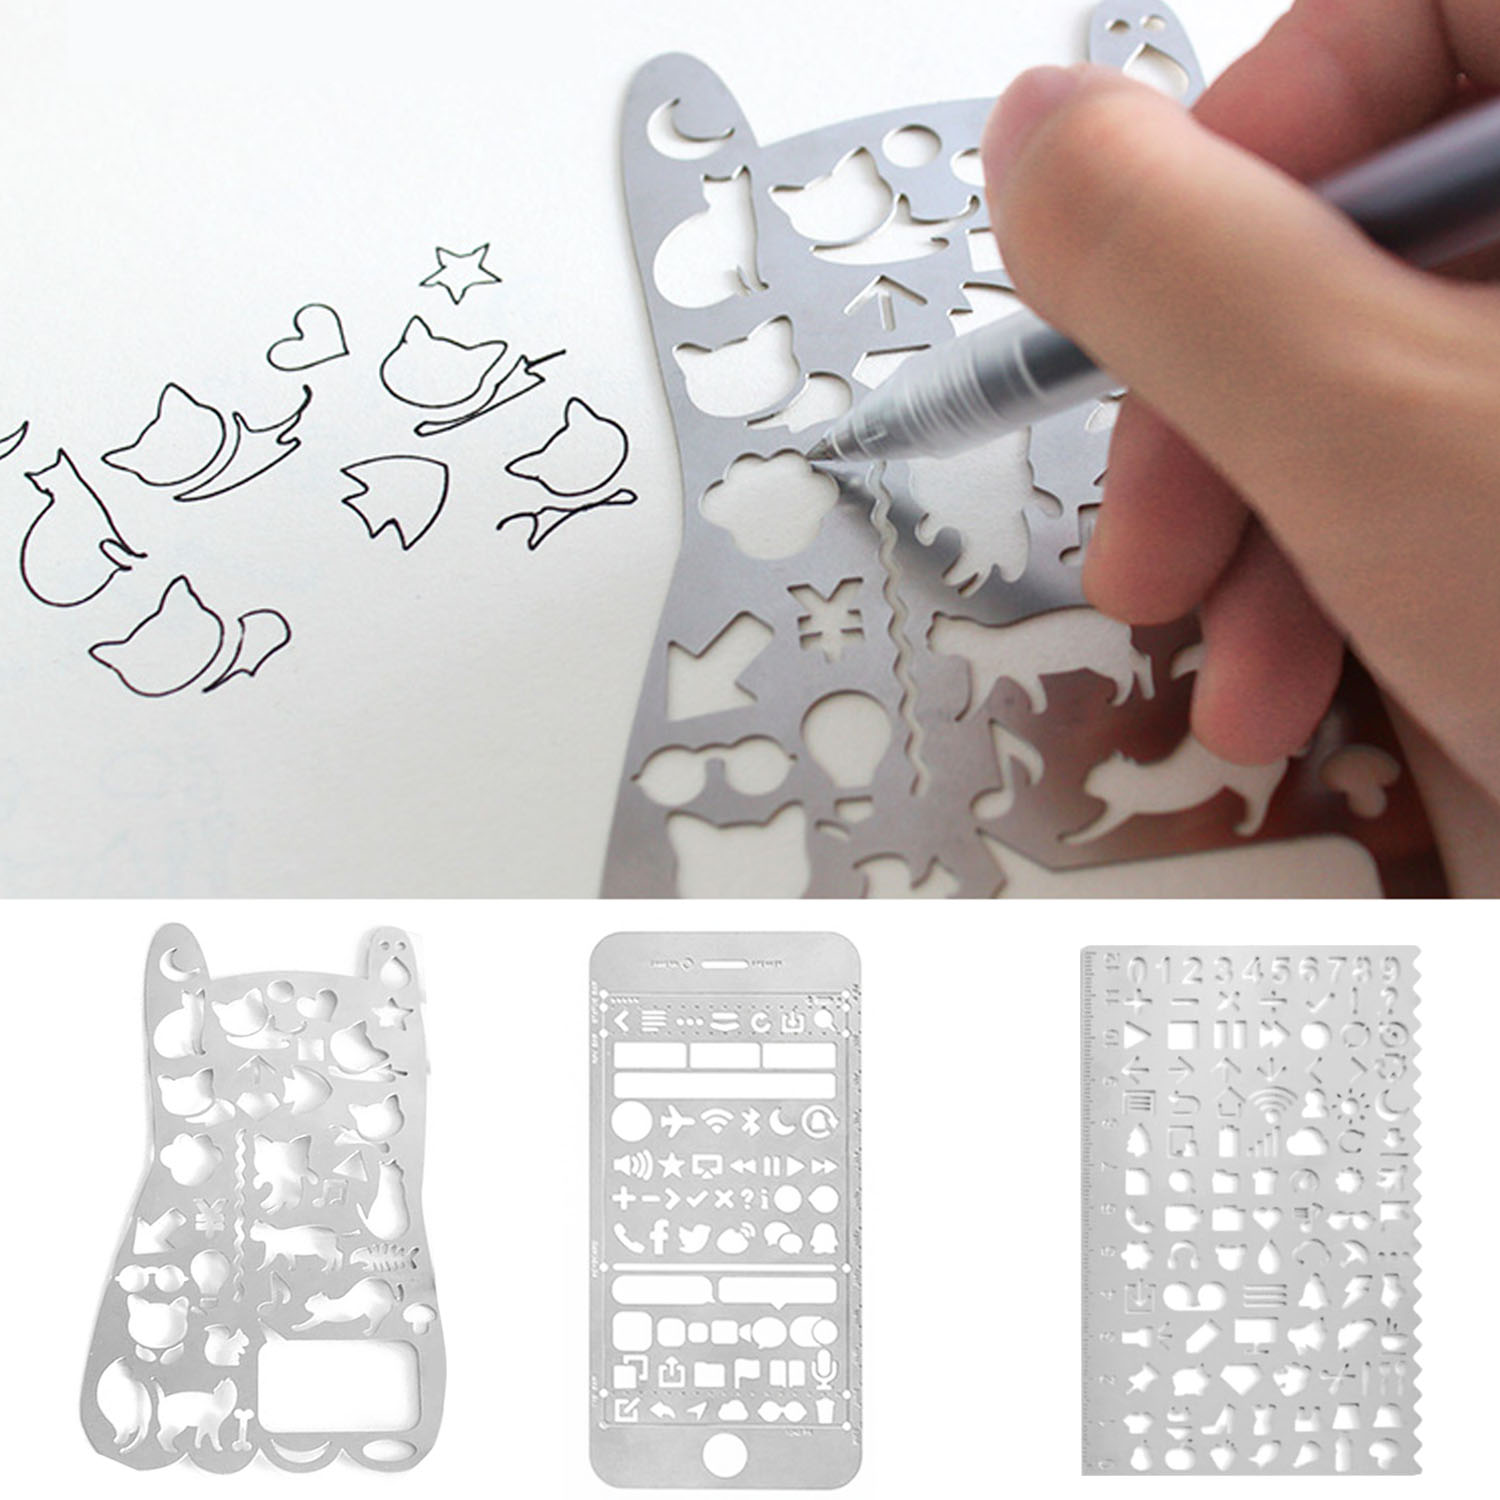 Portable Stainless Steel Multi Functional Drawing Template Painting Ruler Stencil For Agenda Planner Journal Scrapbook Diary